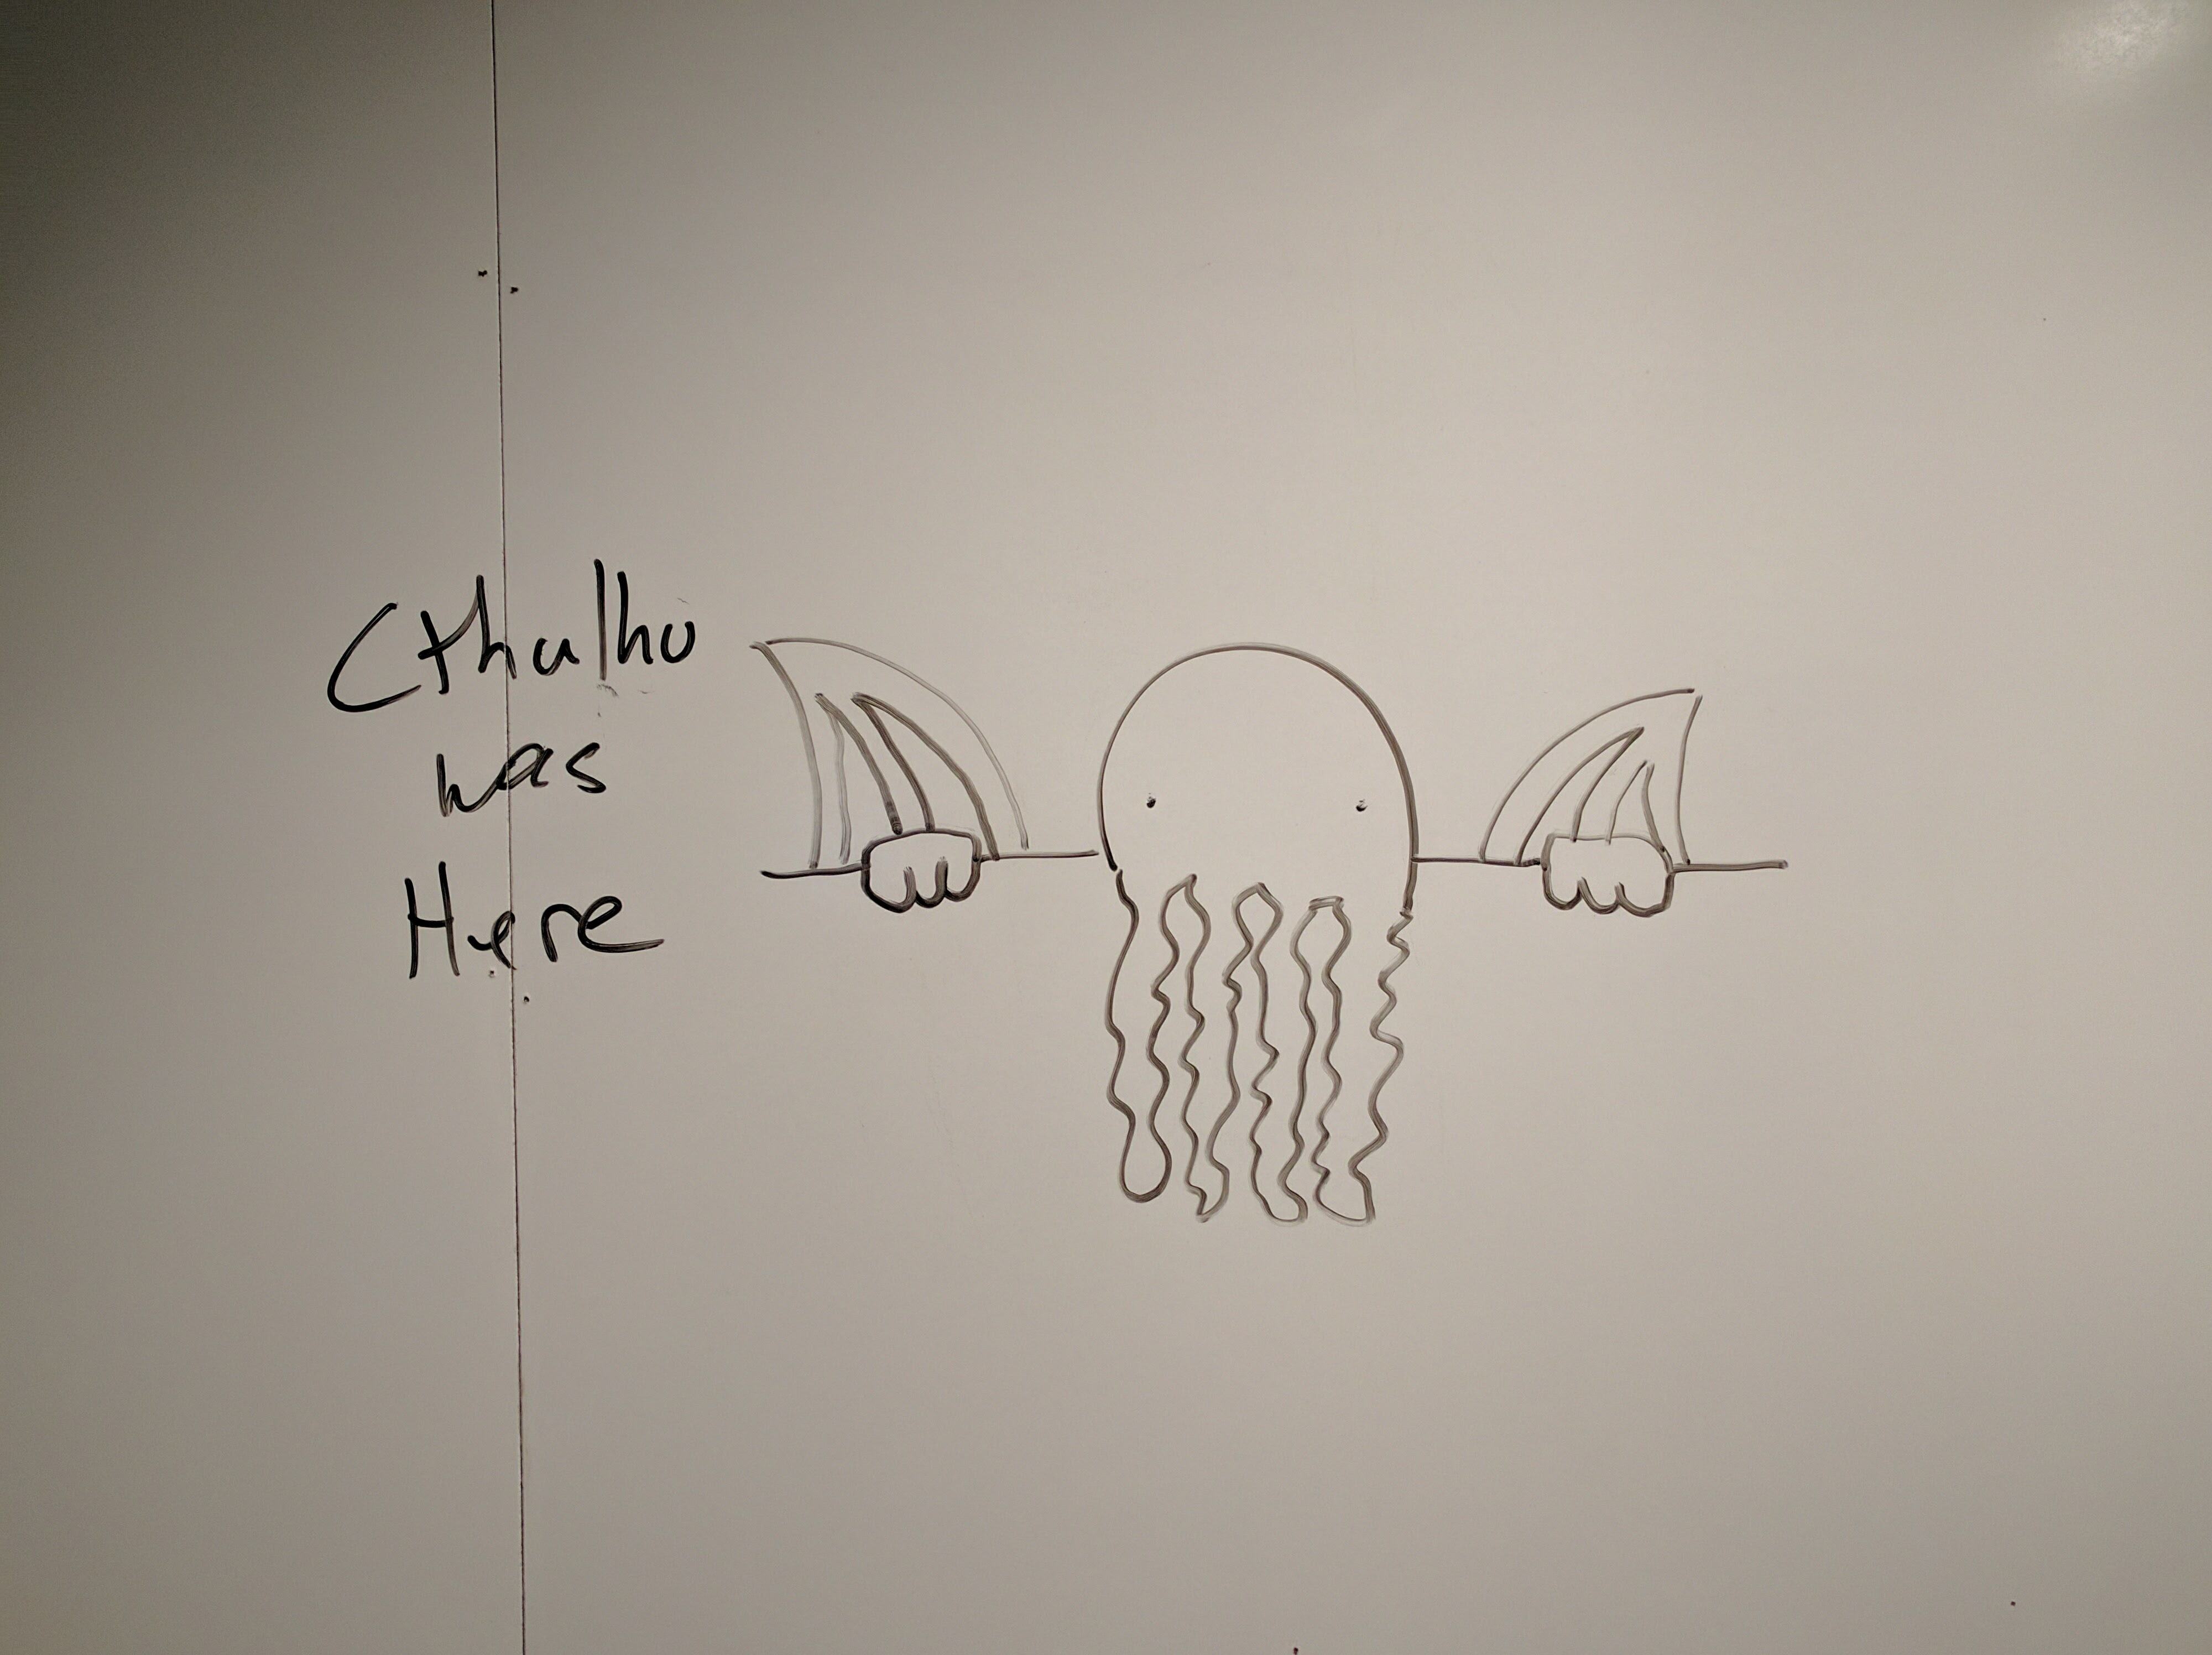 Cthulhu Was Here